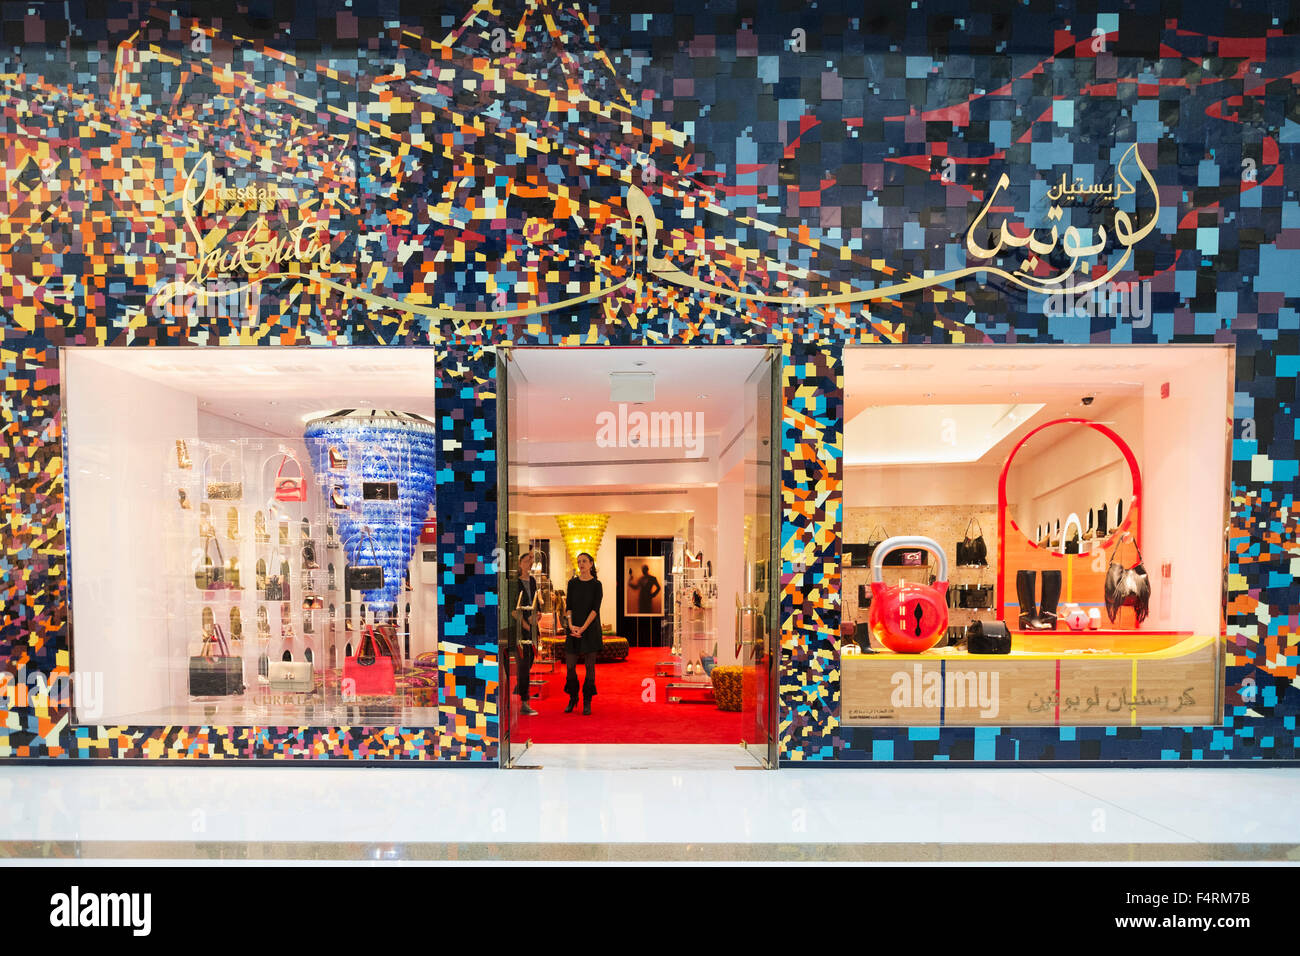 cb2553d440ccbe view of Christian Louboutin fashion boutique inside Dubai Mall in United  Arab Emirates - Stock Image